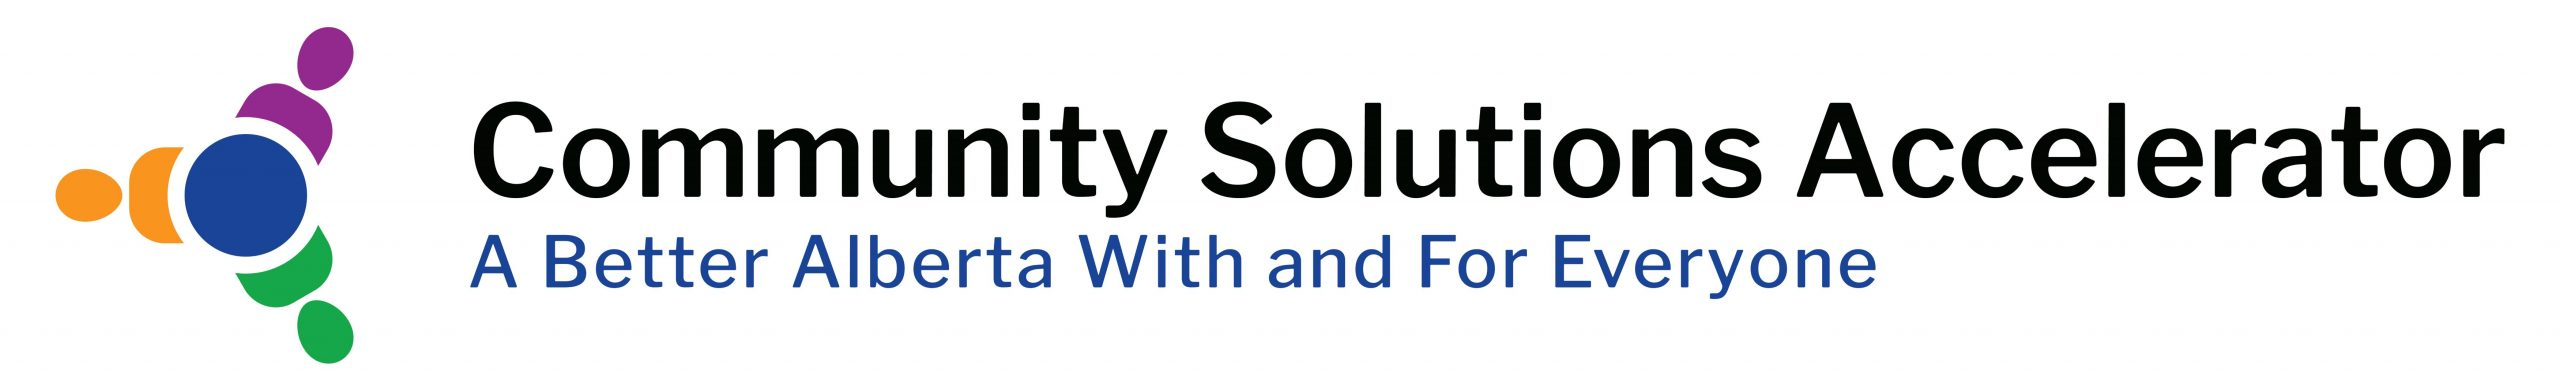 Community Solutions Accelerator (CSA) - A Better Alberta With and For Everyone